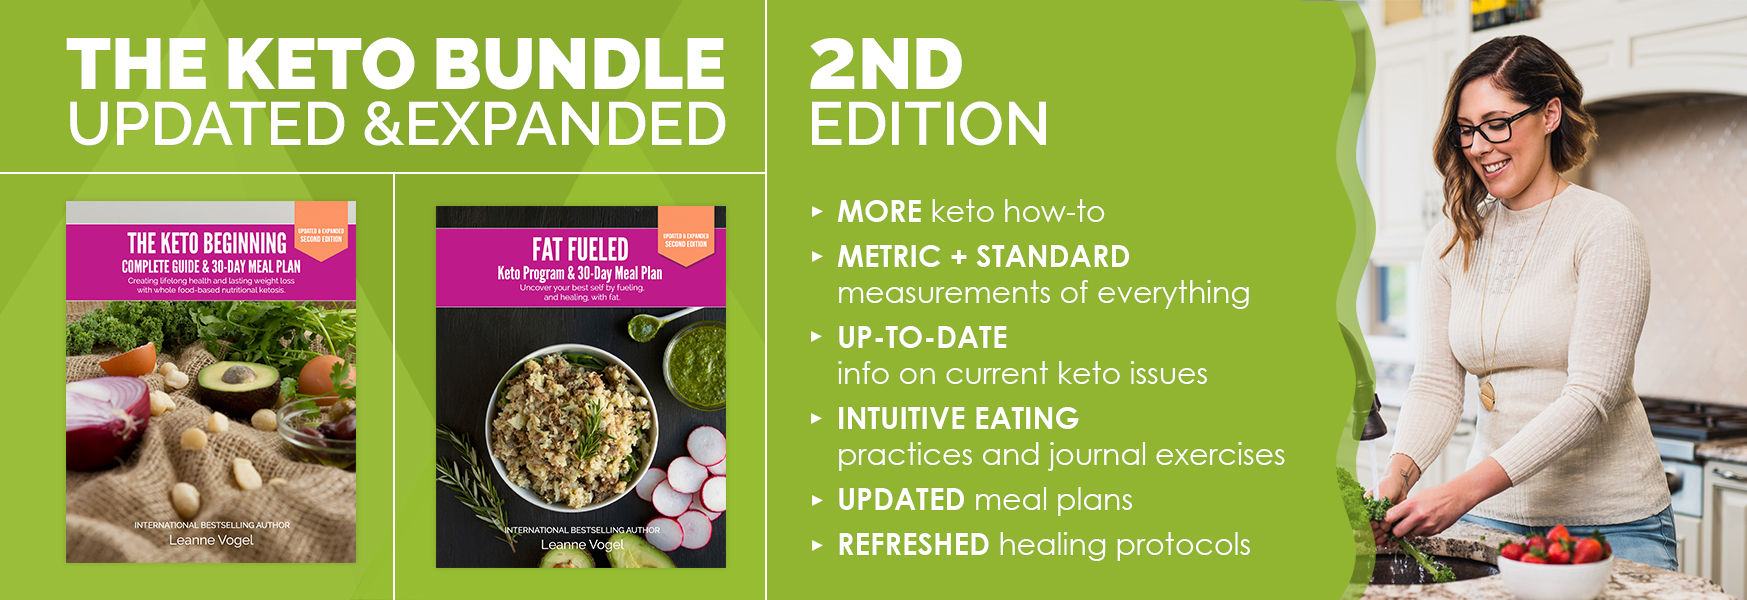 The Keto Bundle upgraded and expanded